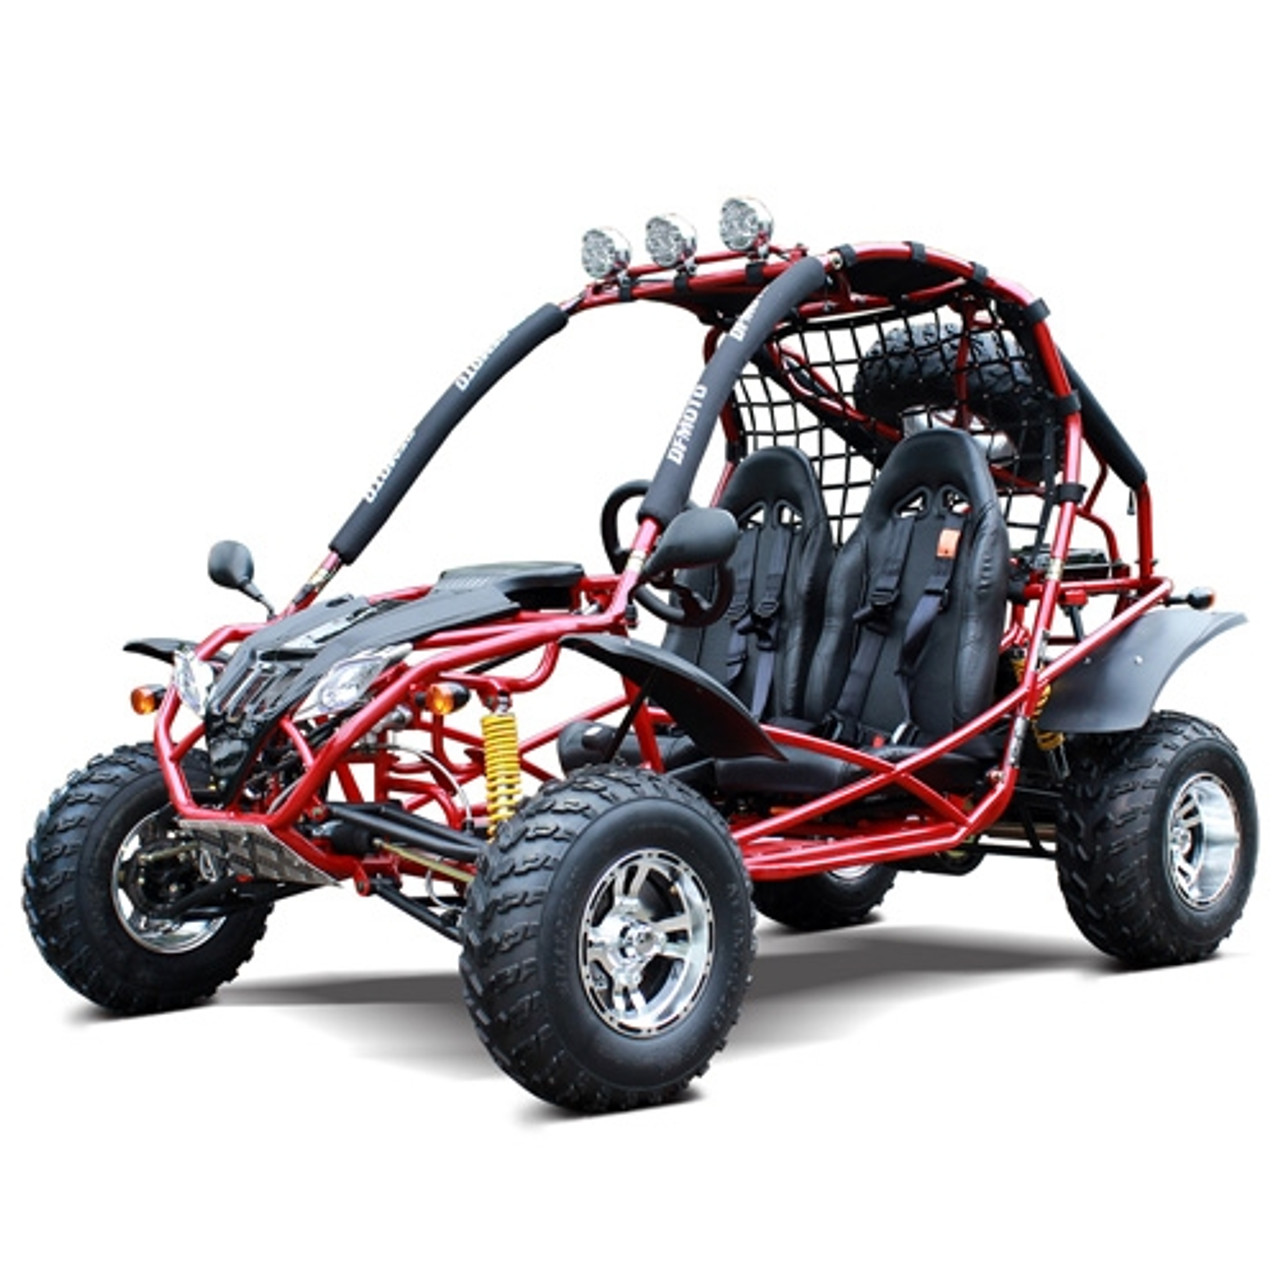 Dongfang 200 Go Kart Type A New Upgraded Alloy Wheels,Headlights